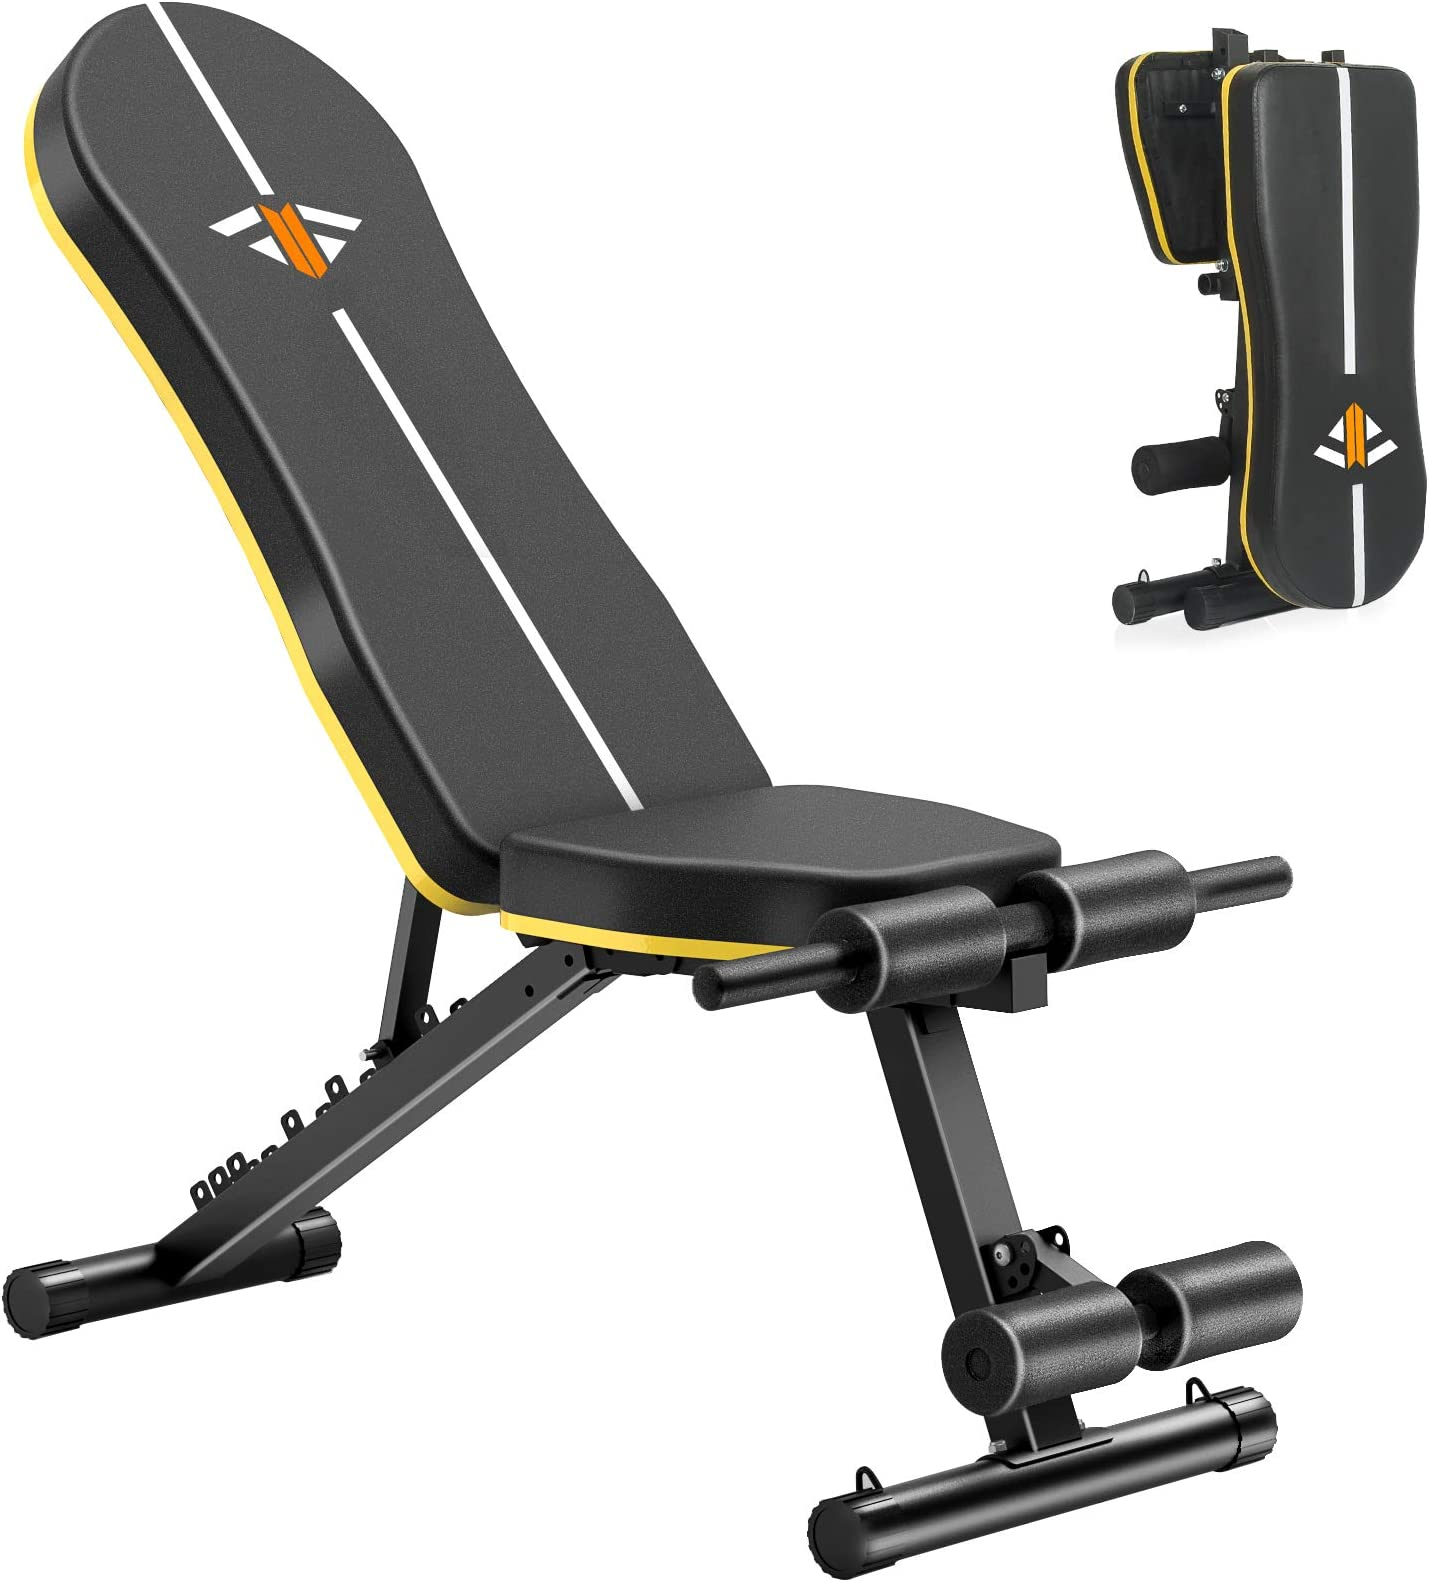 Details about  /Adjustable Weight Bench Incline Decline Foldable Strength Gym Training Workout